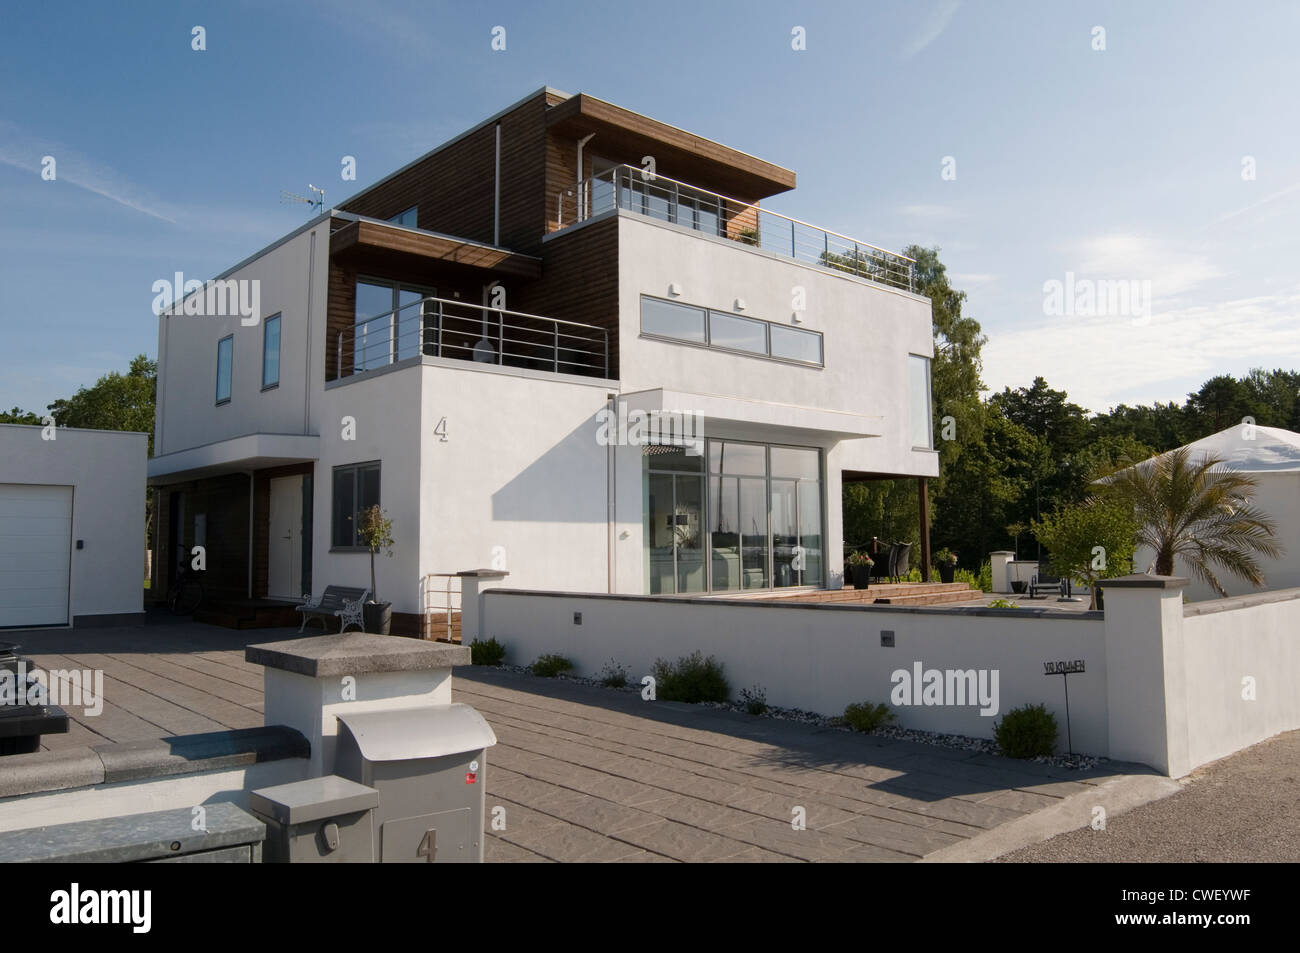 Modern swedish house houses home homes minimalist building for Home builder websites